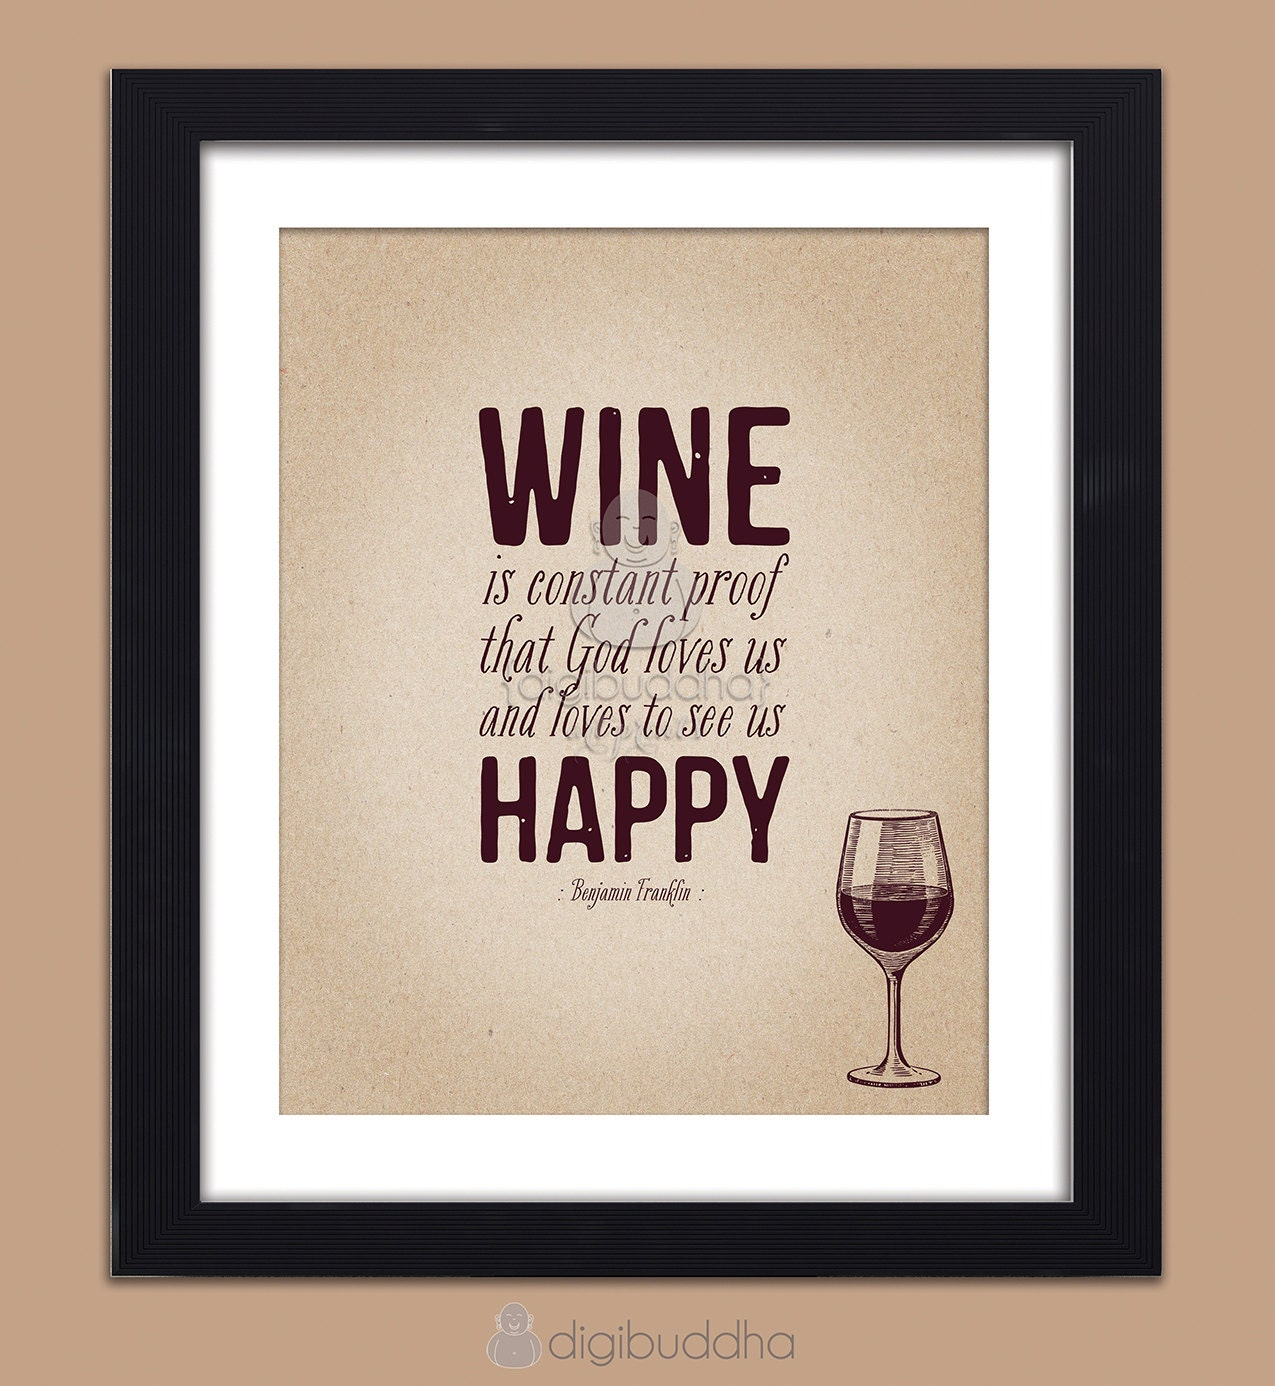 Quotes About Wine And Friendship Funny Friendship Quotes Wine Good Wine Friends Quotes Quotesgram